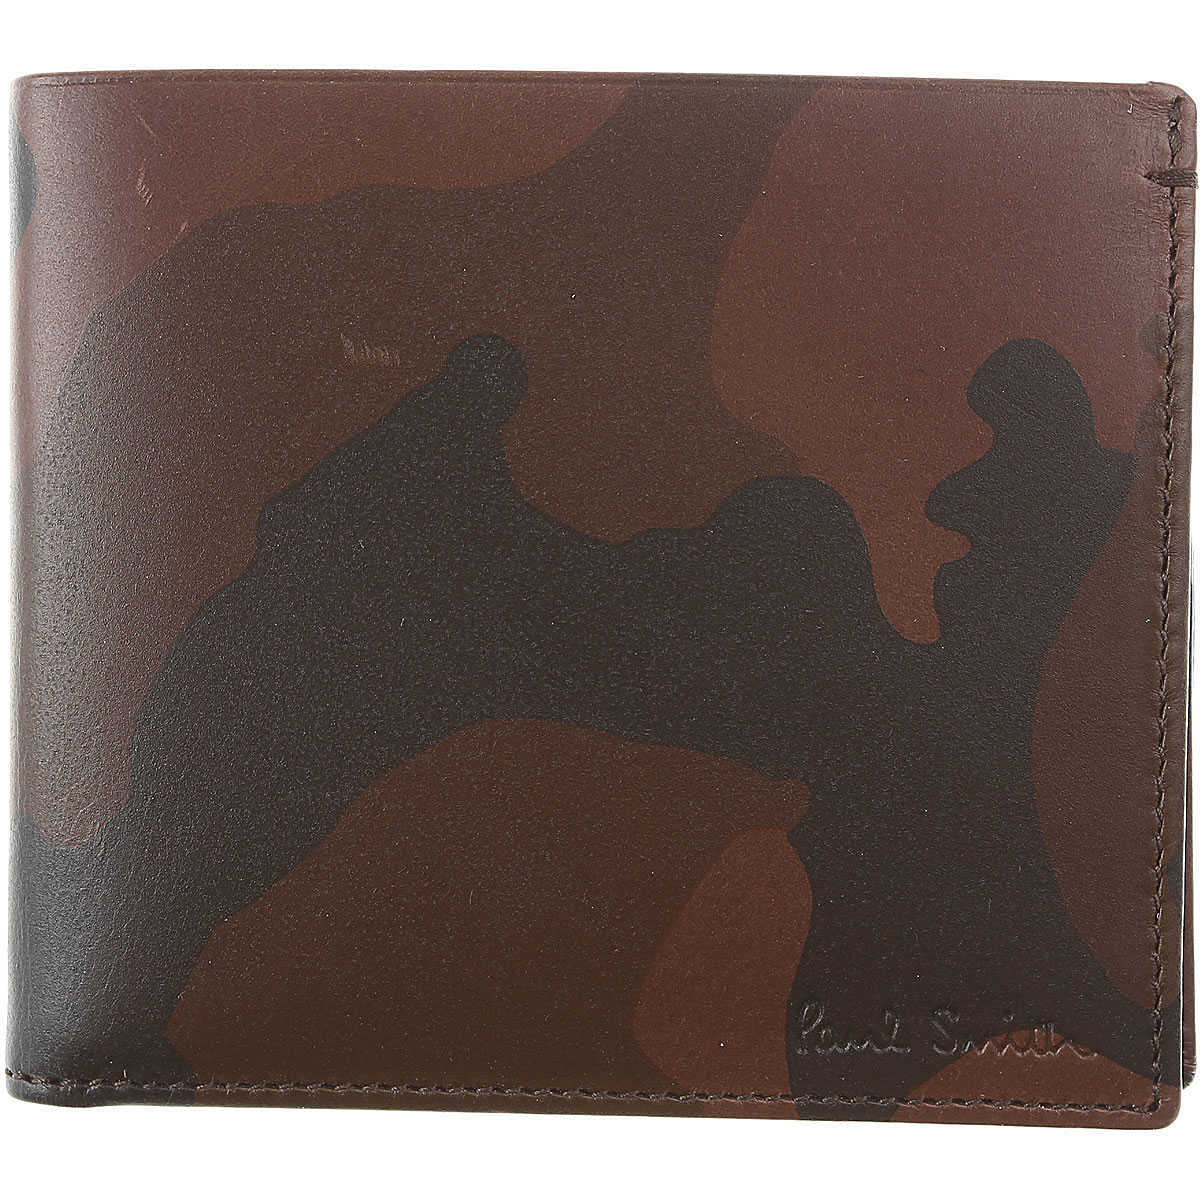 Paul Smith Wallet for Men On Sale camouflage DK - GOOFASH - Mens WALLETS